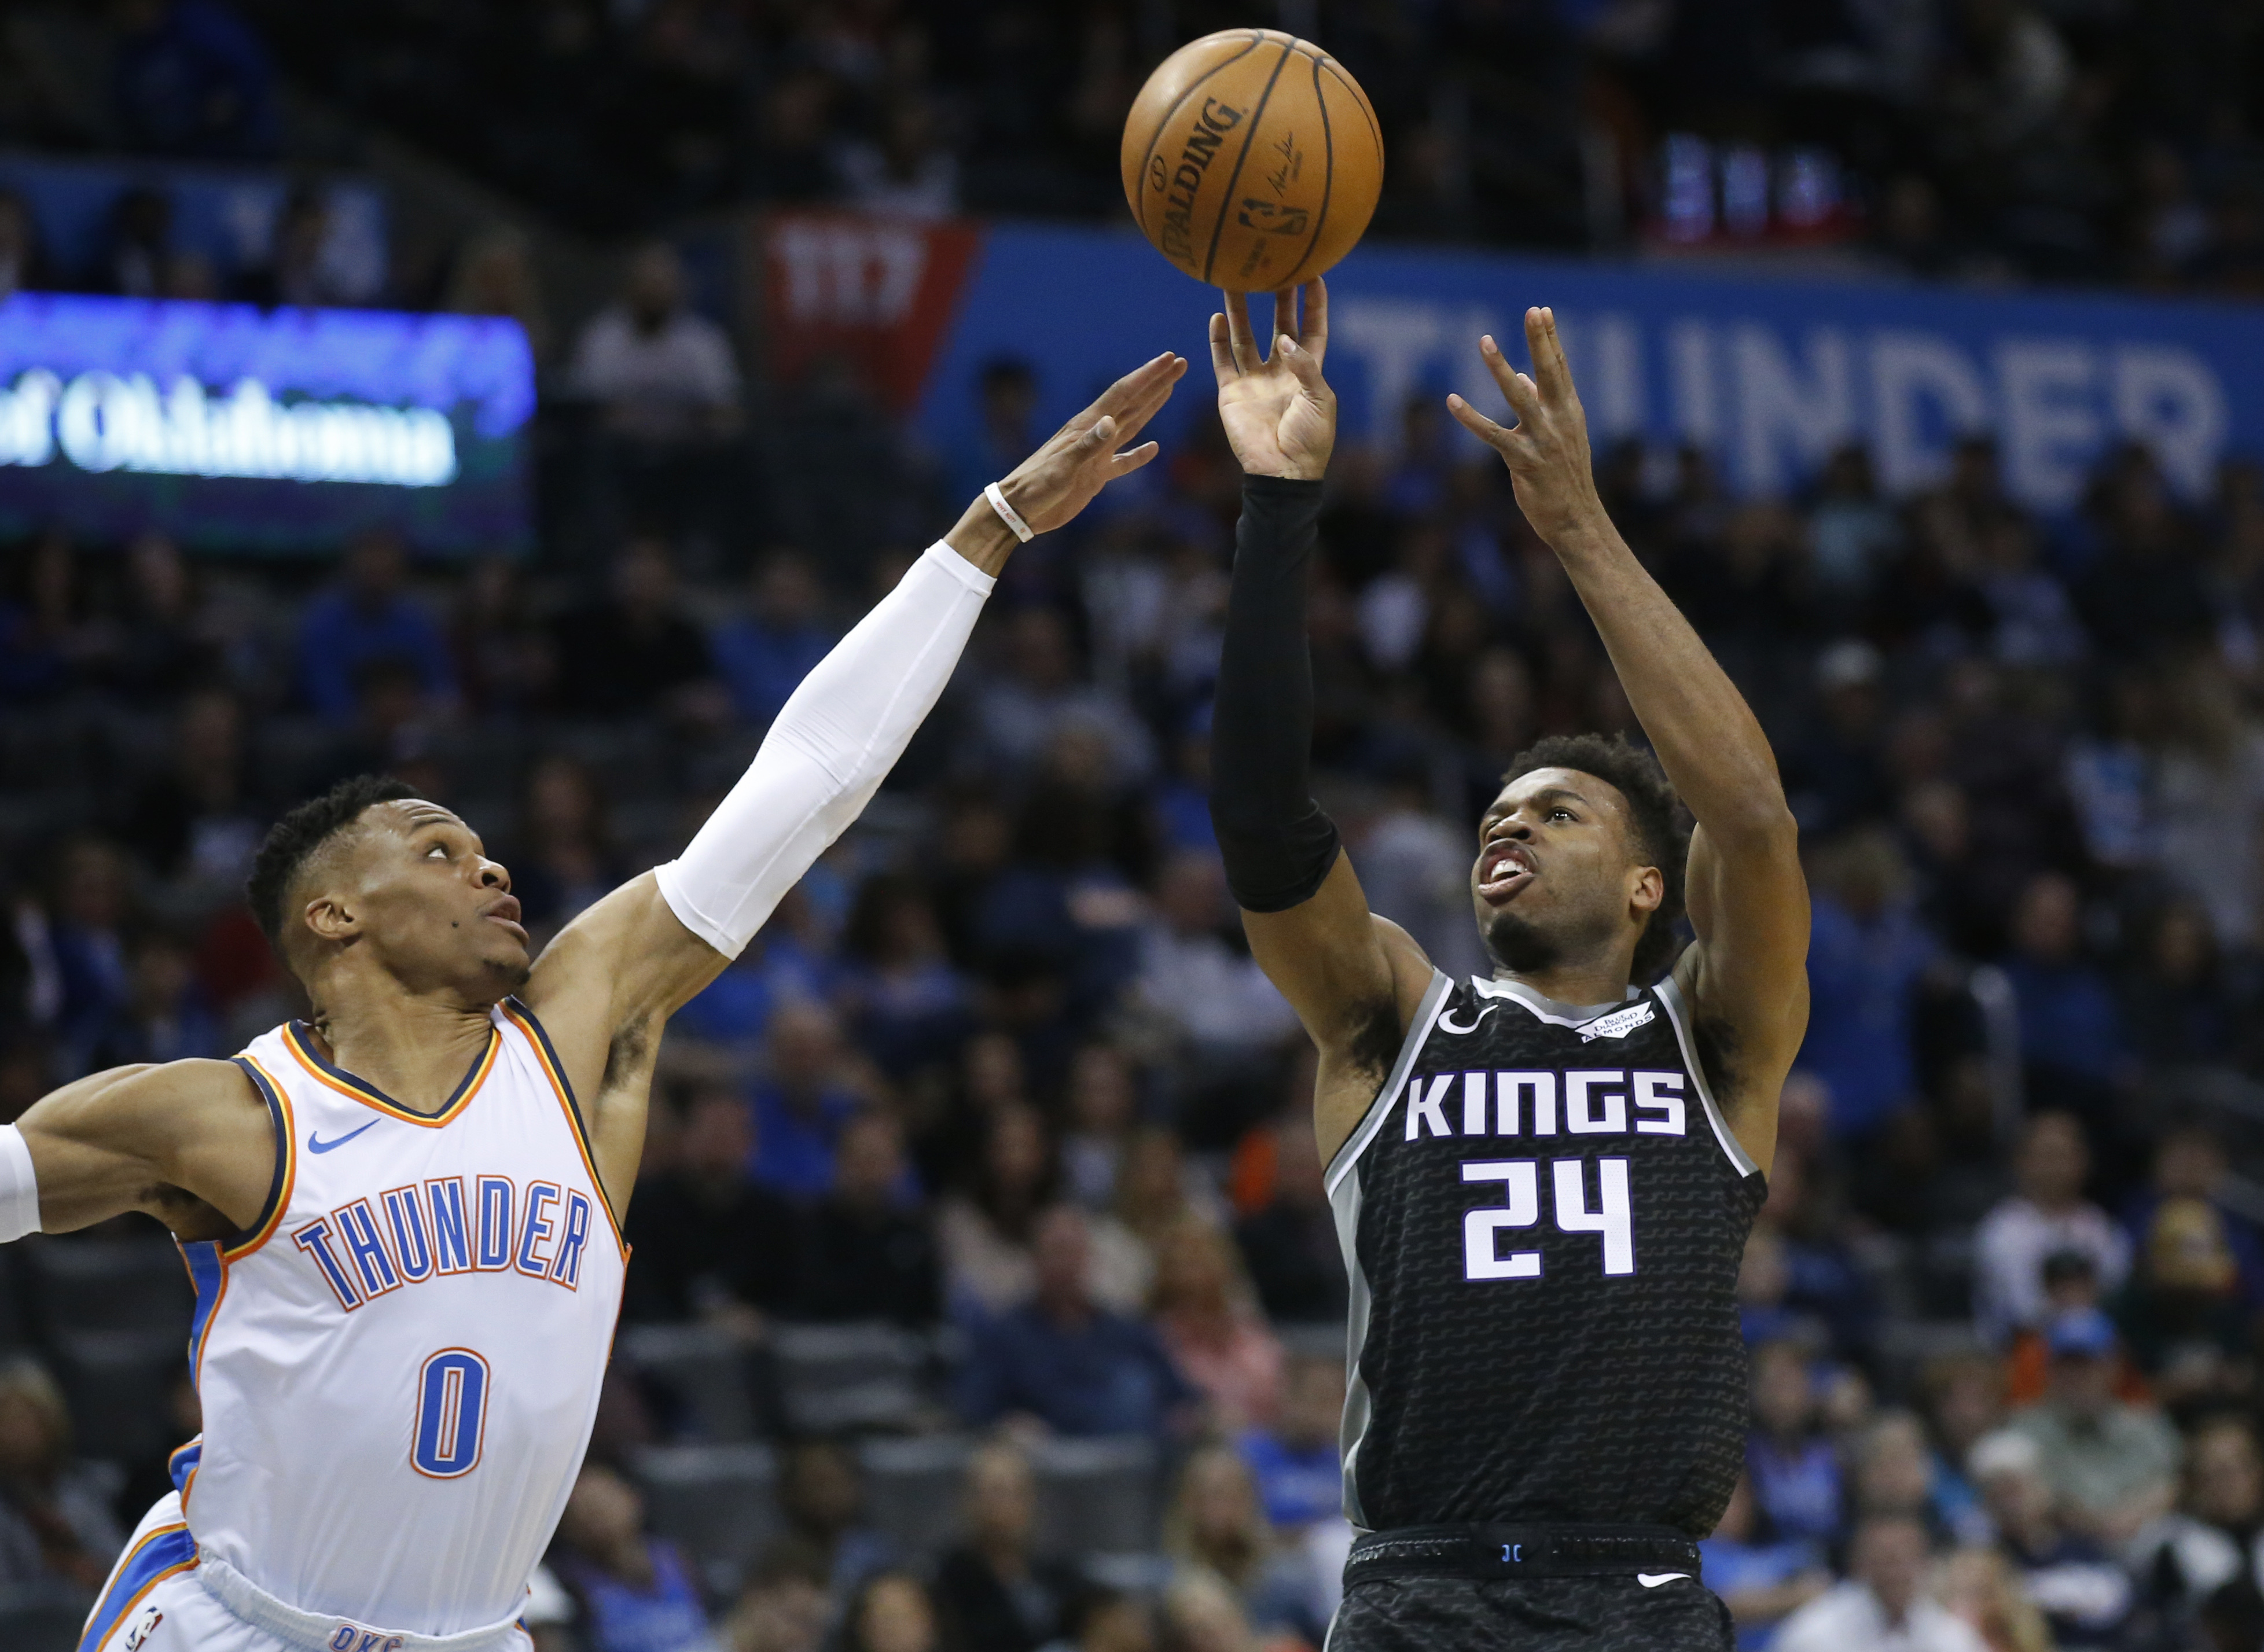 Hield scores 34 as Kings top Thunder 119-116